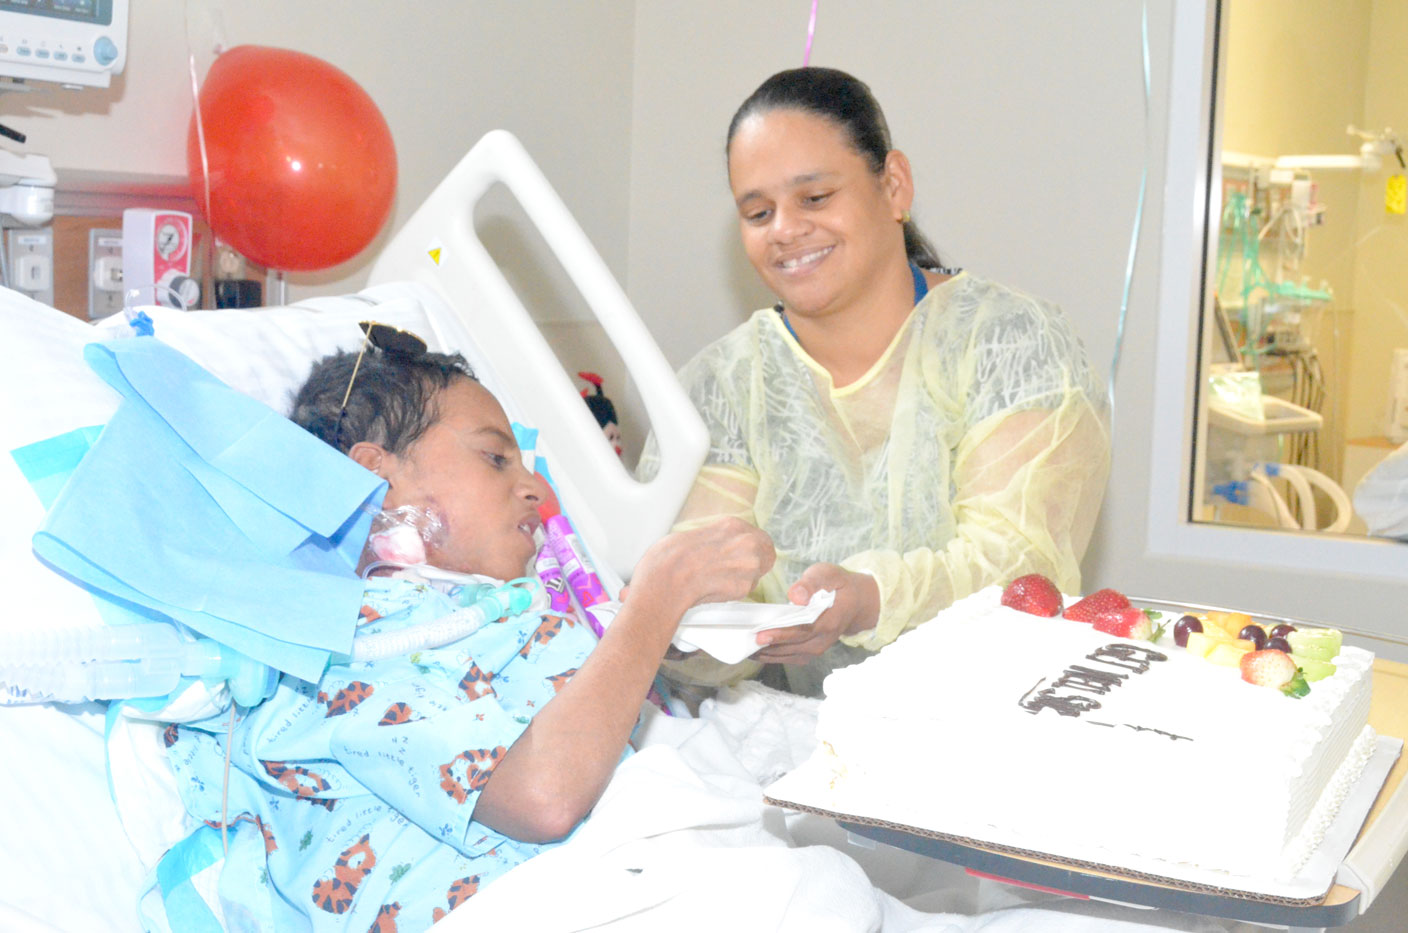 Moved by Plight of Young Heart Patient, Stranger Pays His Hospital Bill